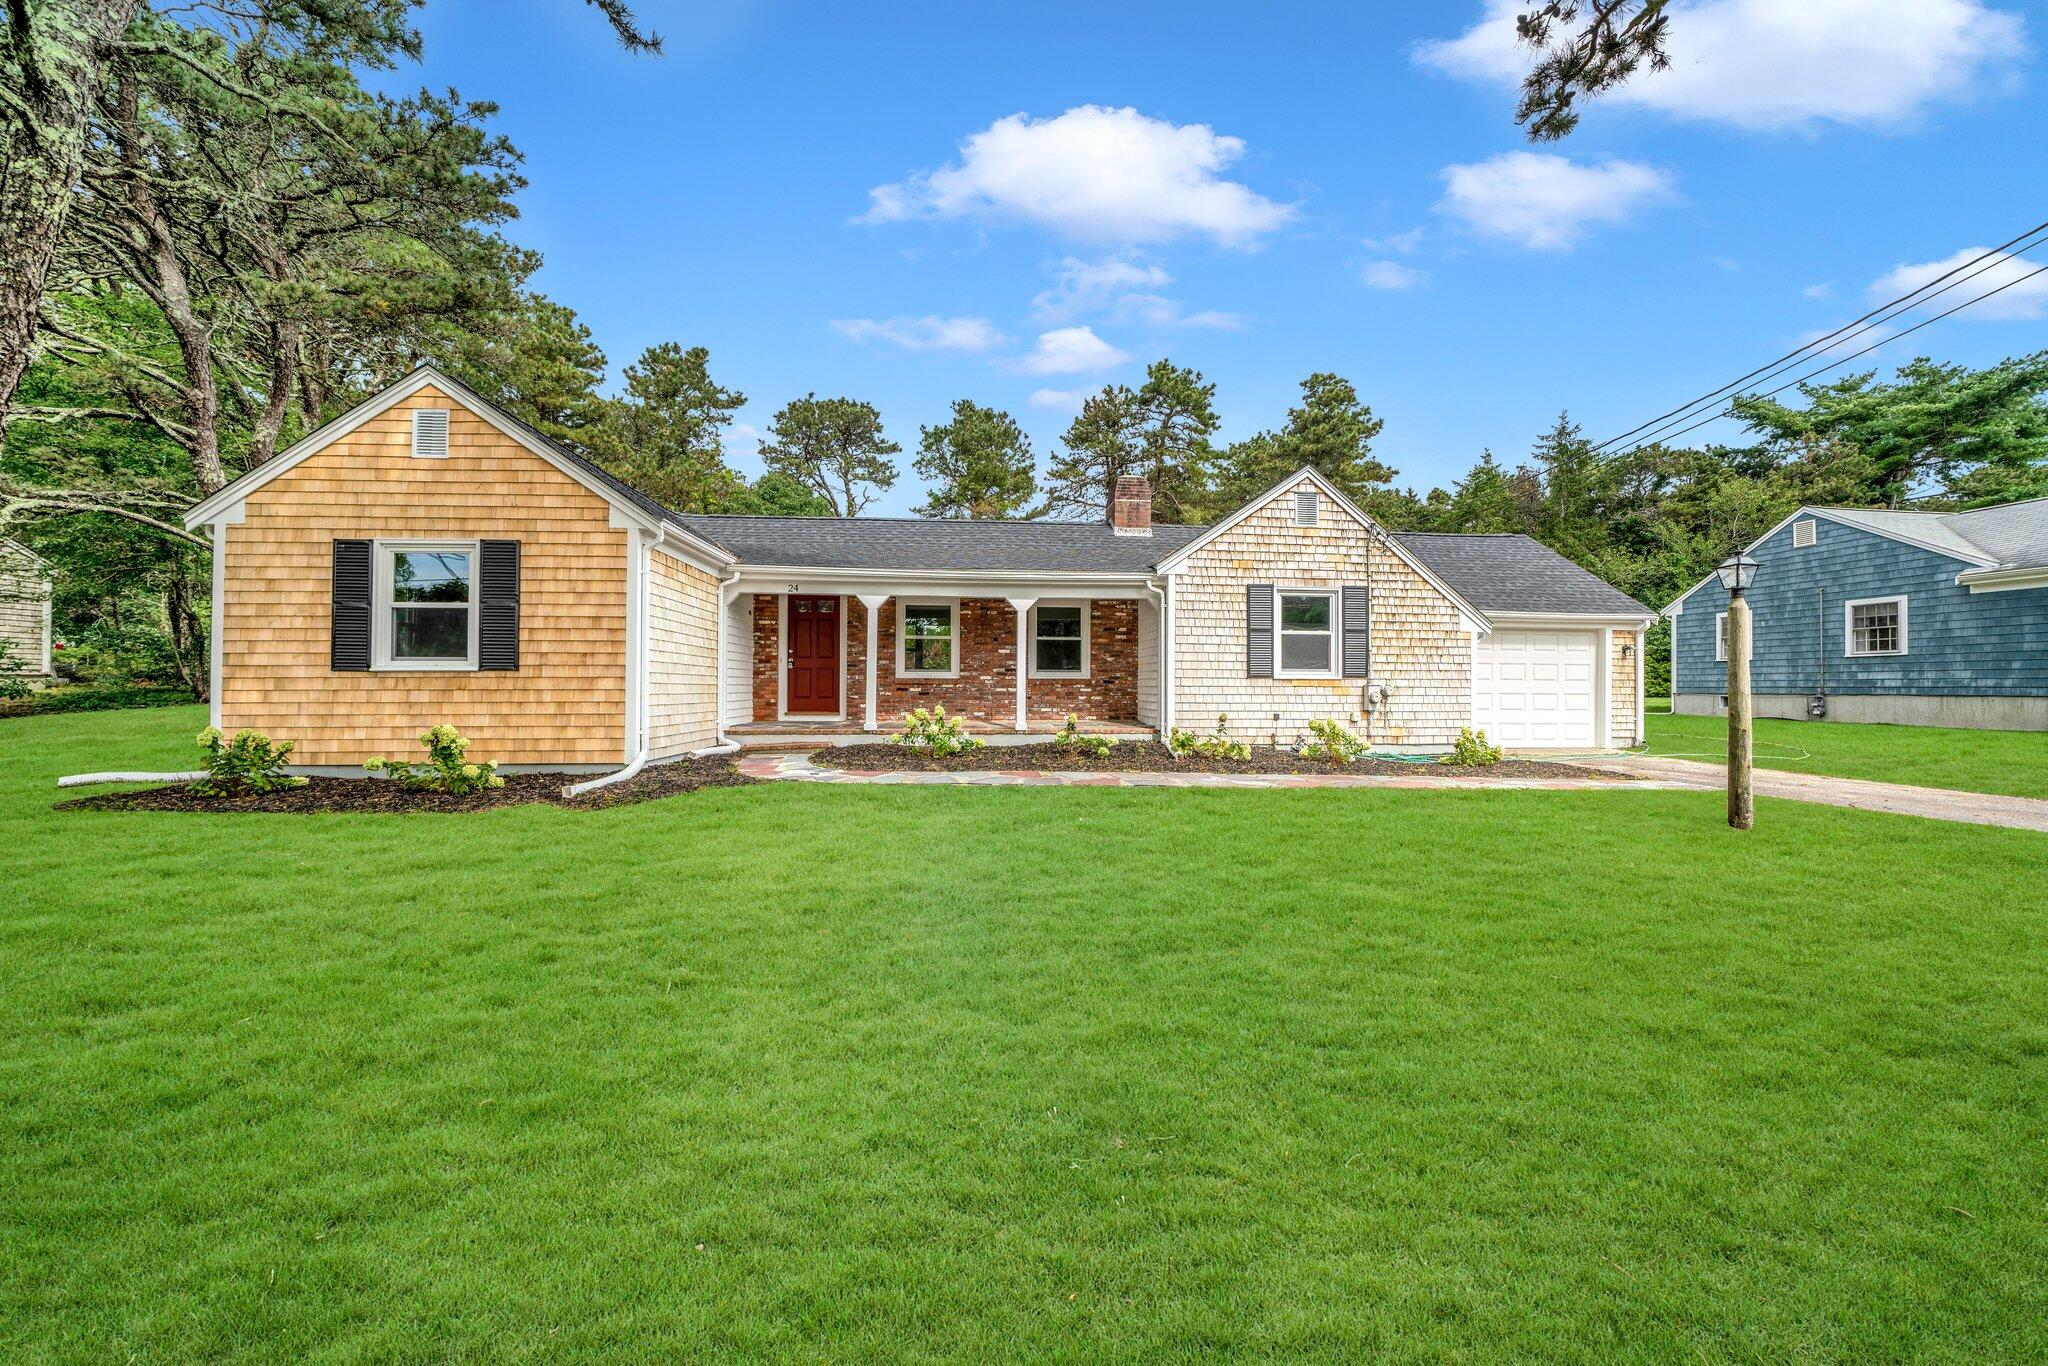 24 Capt Nickerson Road, South Yarmouth MA, 02664 details